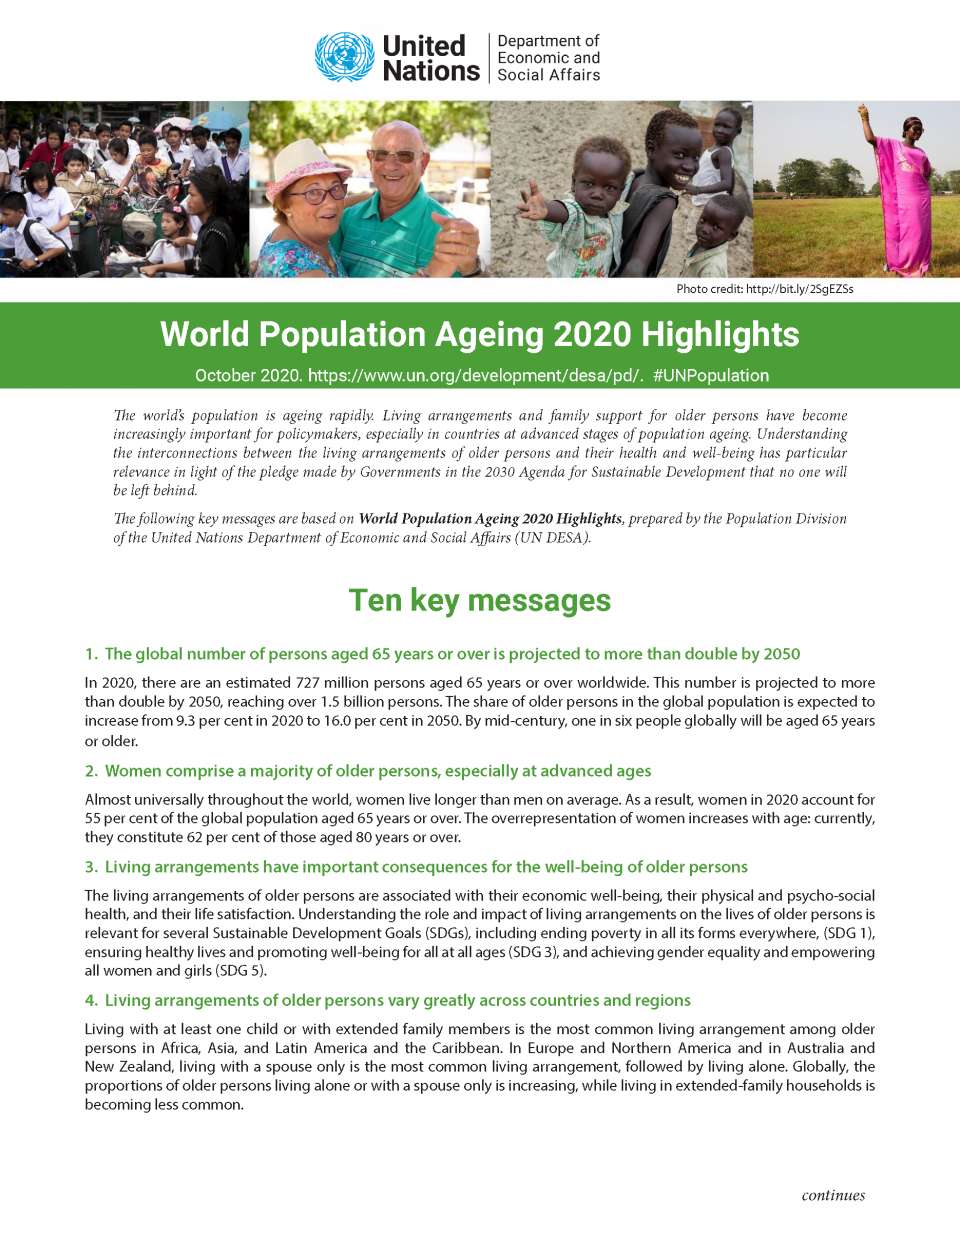 Population ageing ten key messages cover image